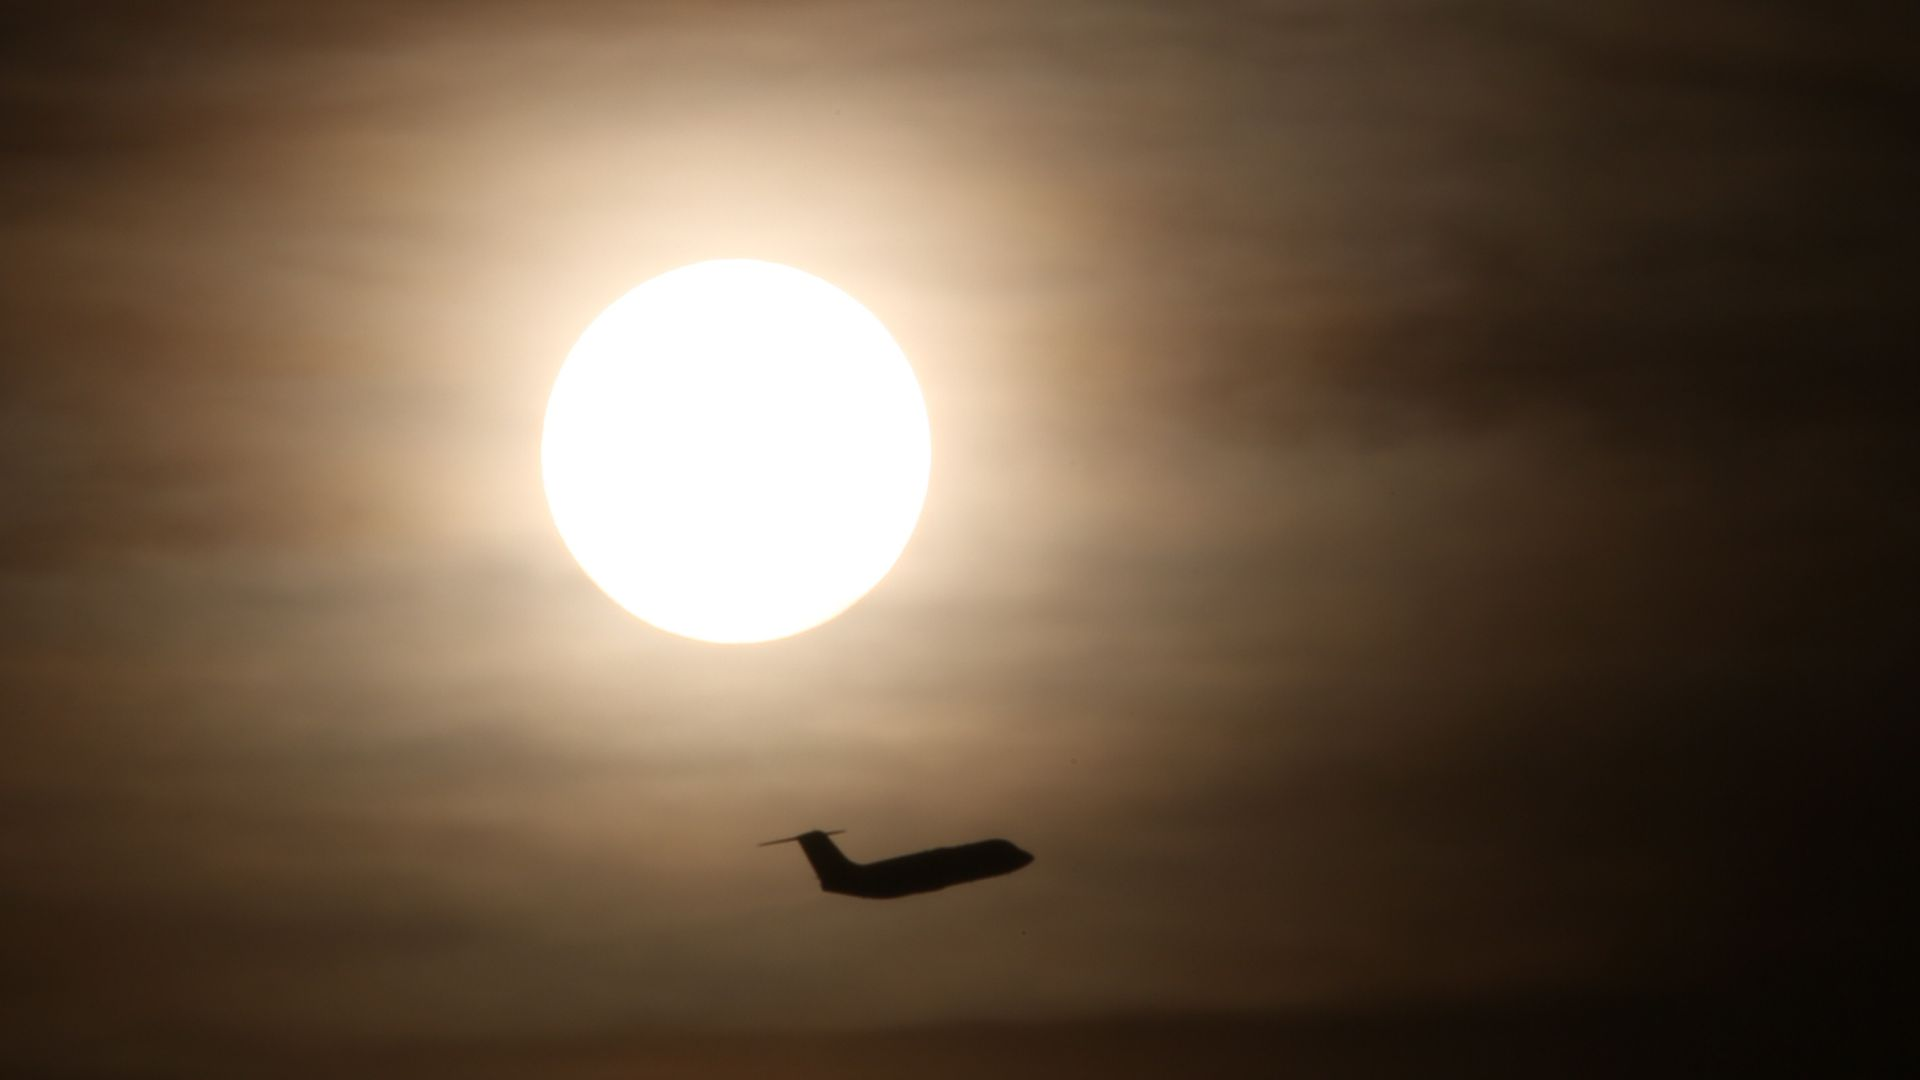 Plane flying across the sky with sun in the distance